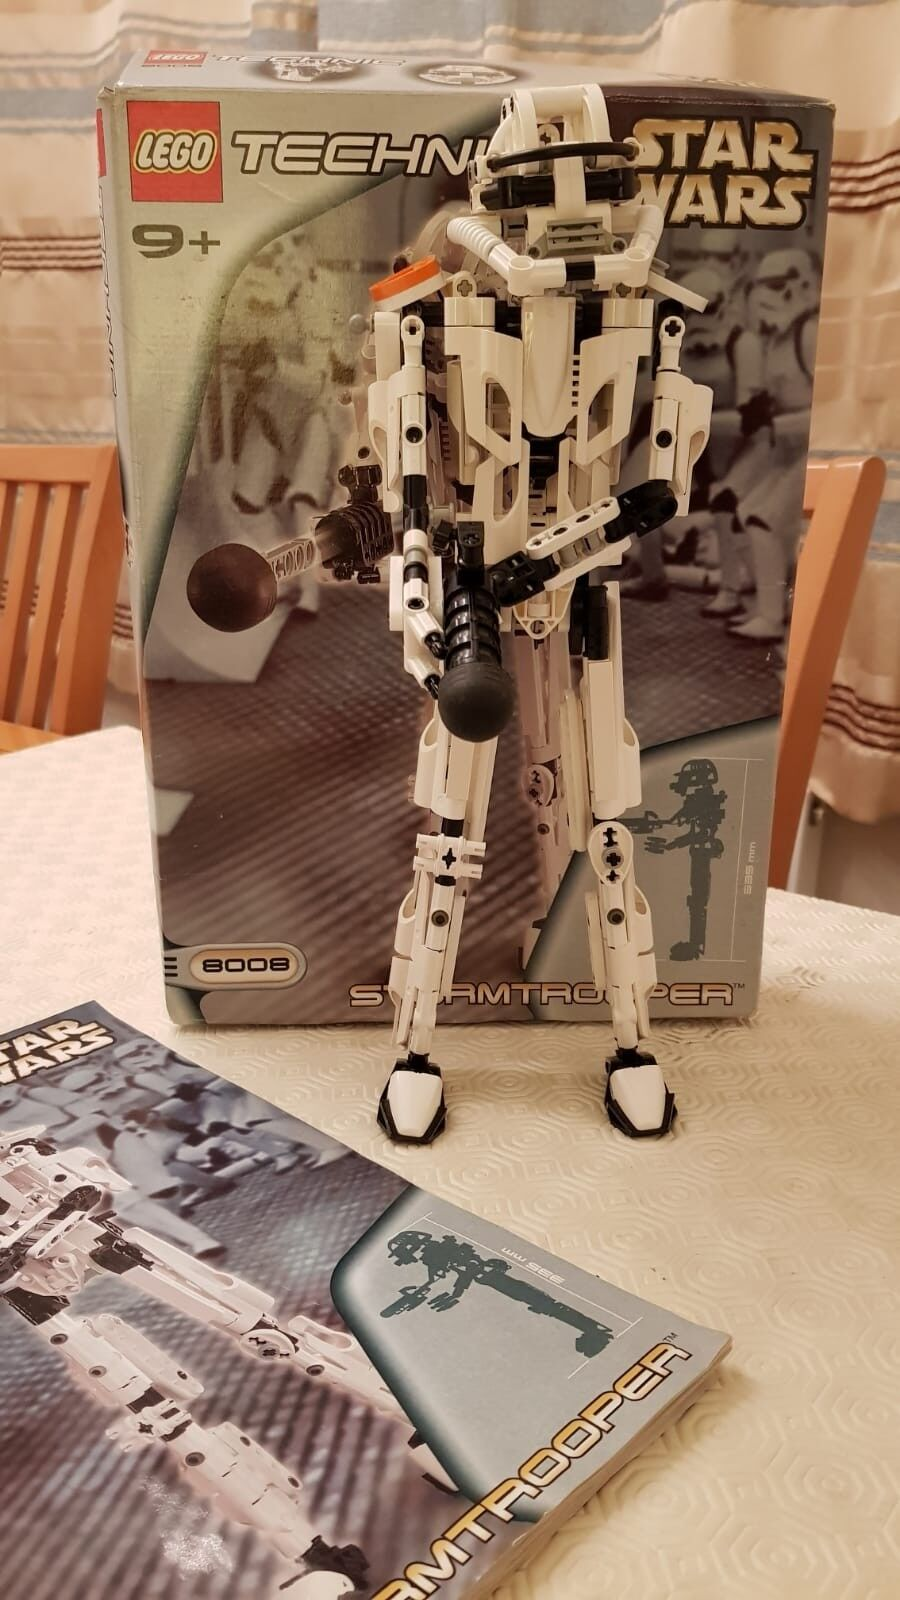 Lego Star Wars 8008 Stormtrooper complete in in in box a3331a